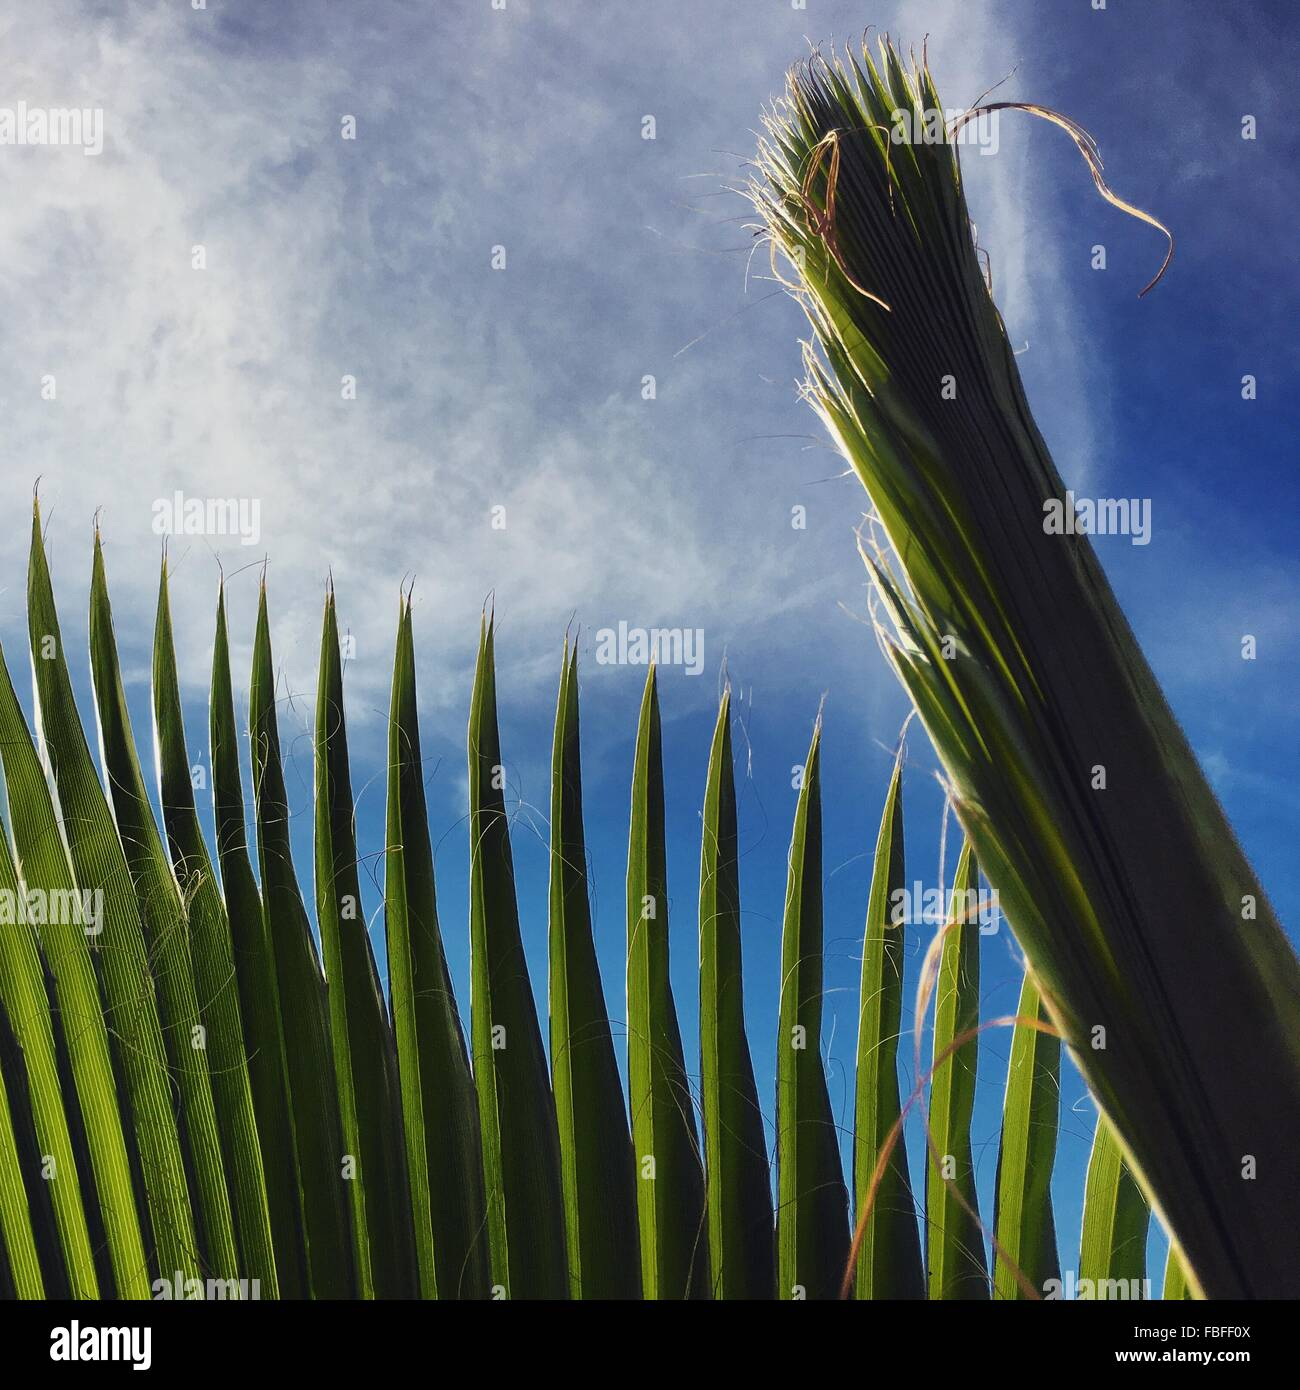 Low Angle View Of Plants Against Sky - Stock Photo